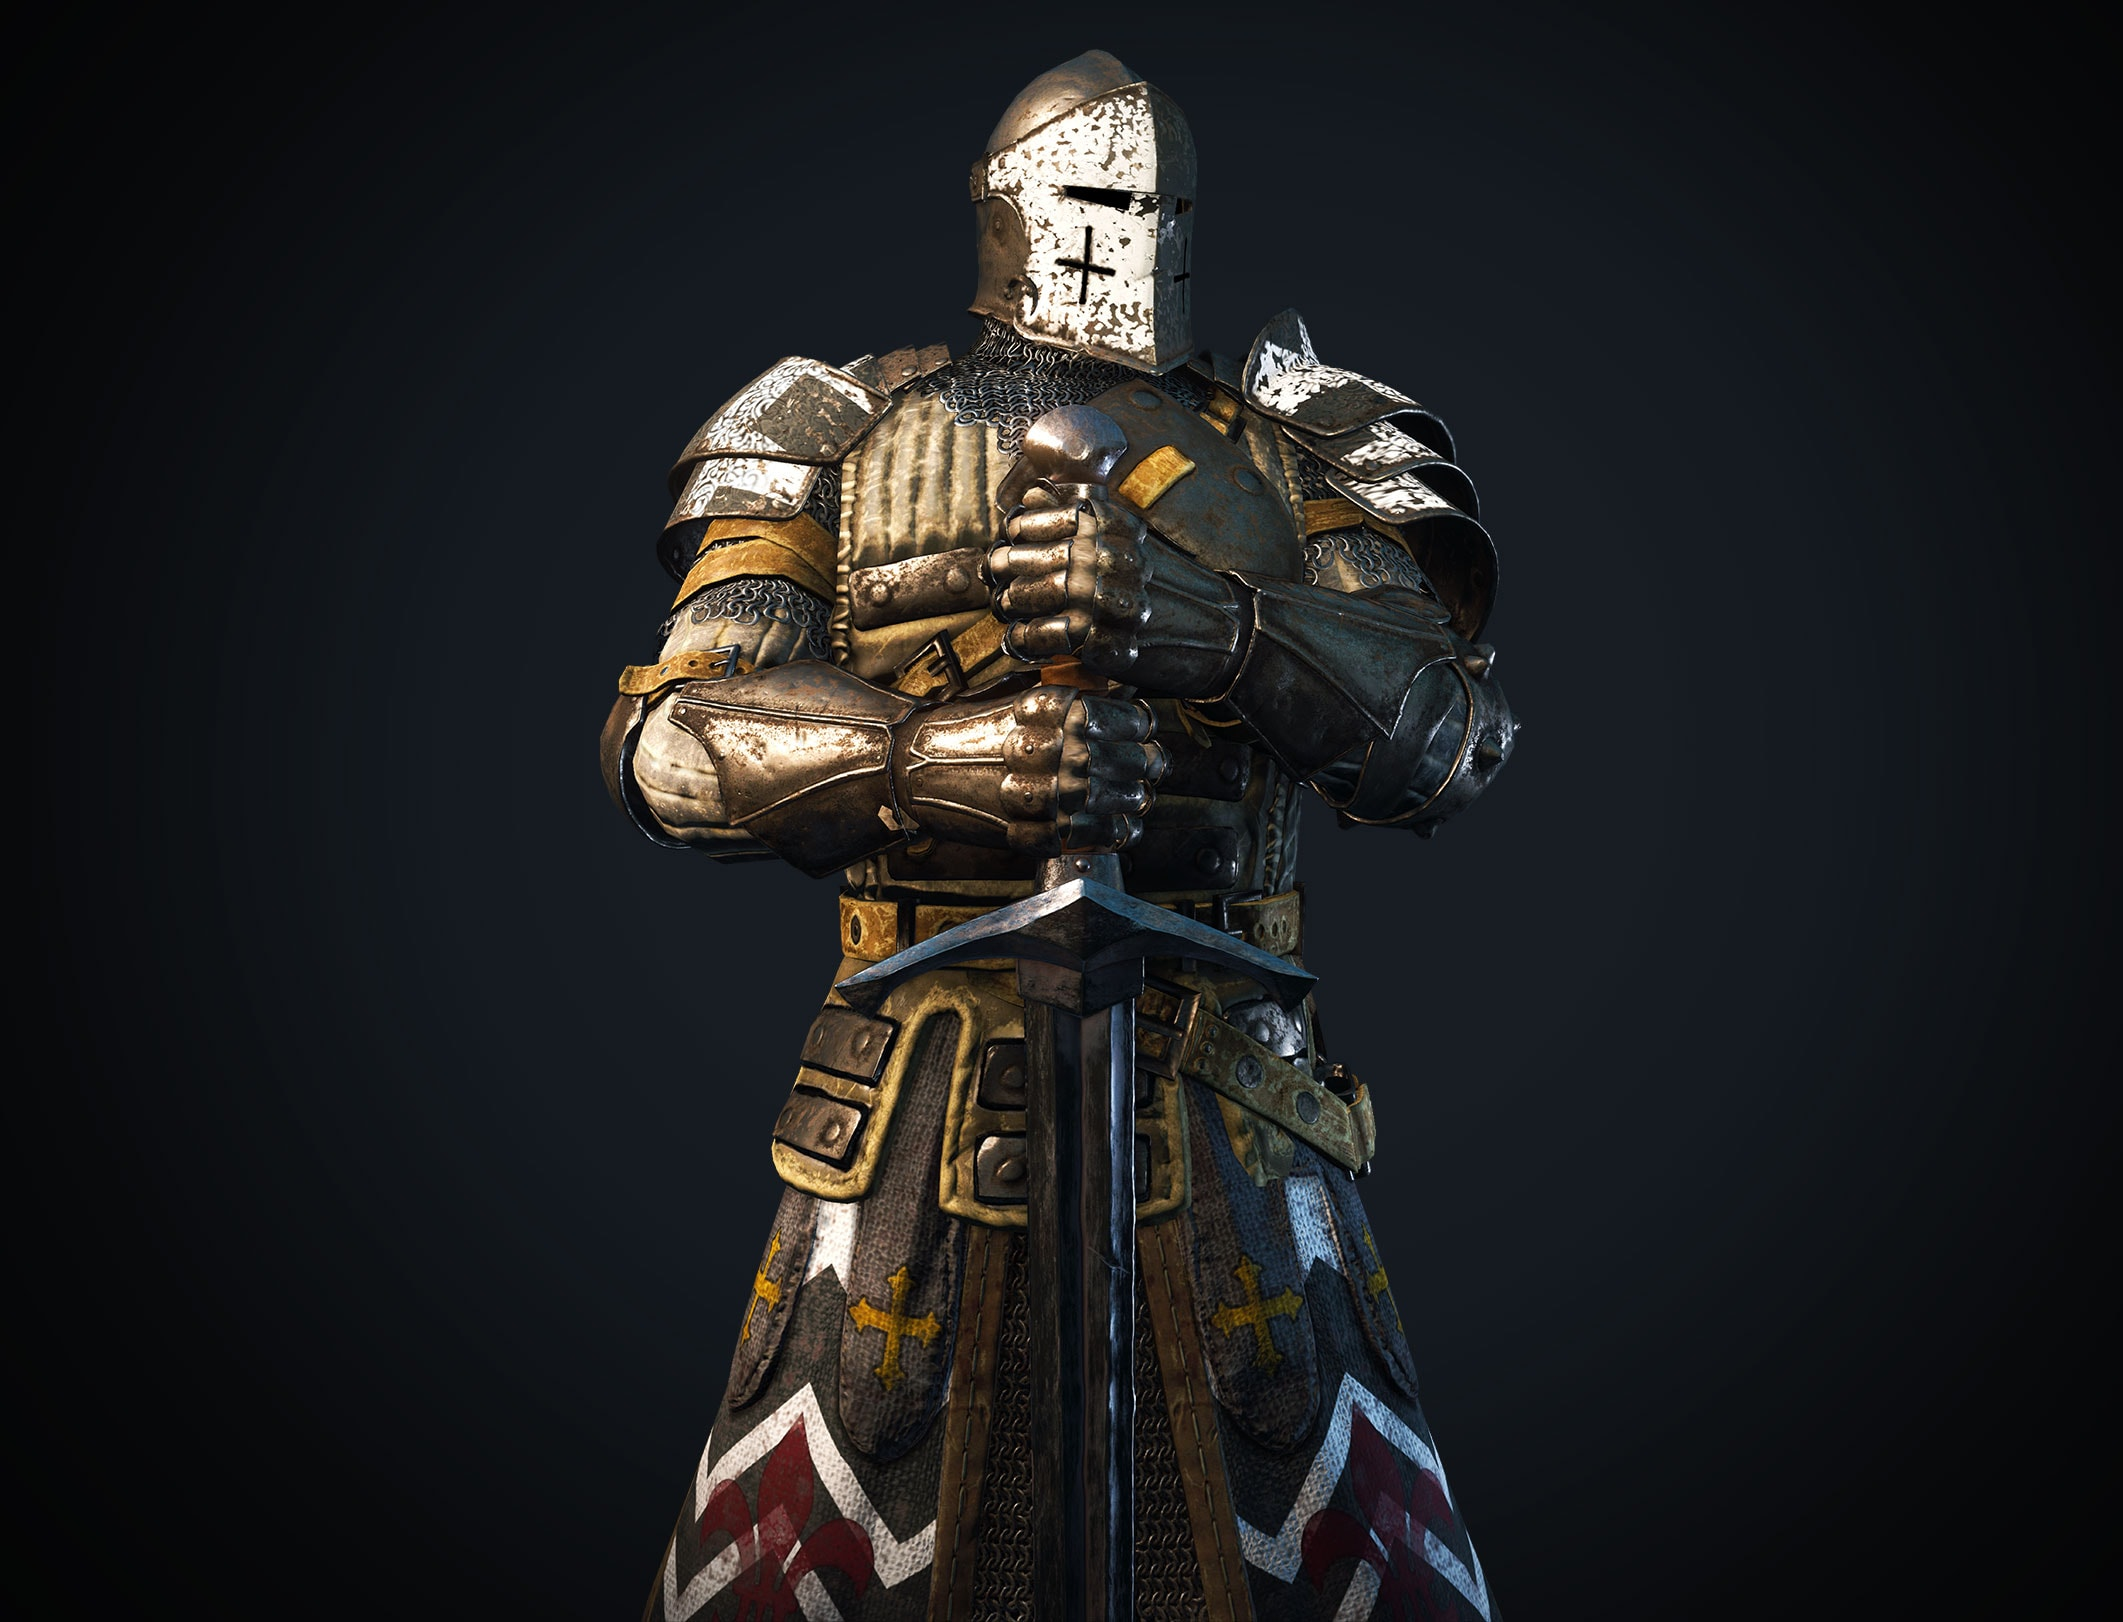 https://ubistatic19-a.akamaihd.net/resource/de-de/game/forhonor/fh-game/fh_menu-warden_ncsa.jpg